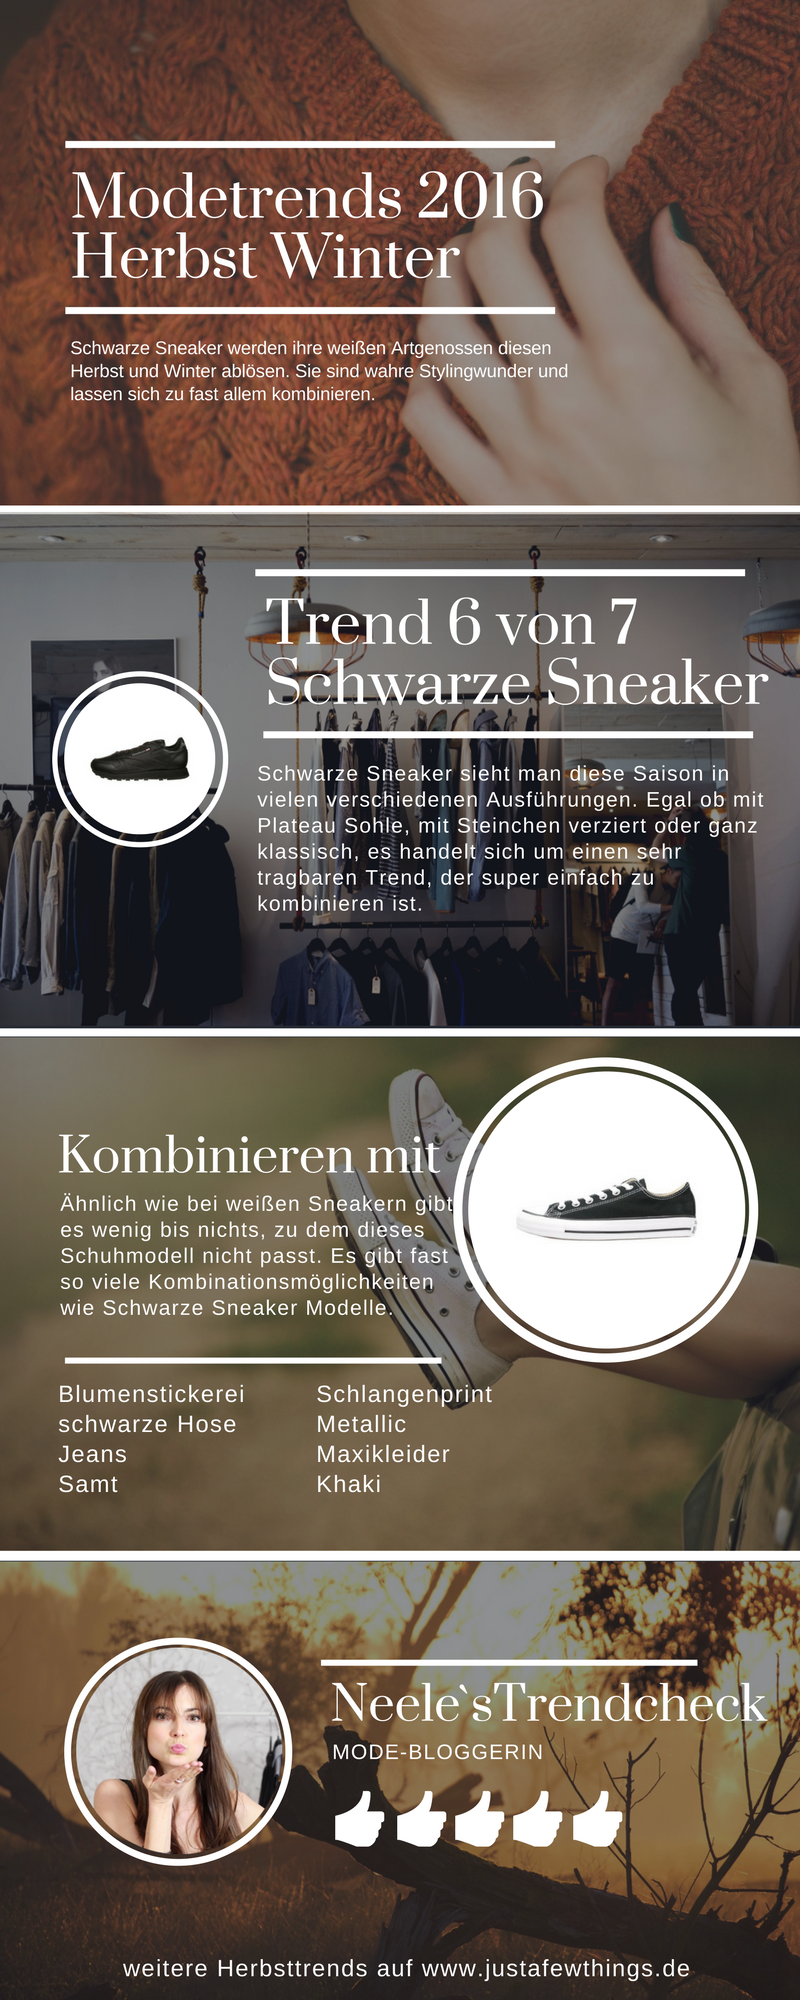 schwarze sneaker modetrends herbst winter 2016 just a few things der modeblog aus freiburg. Black Bedroom Furniture Sets. Home Design Ideas